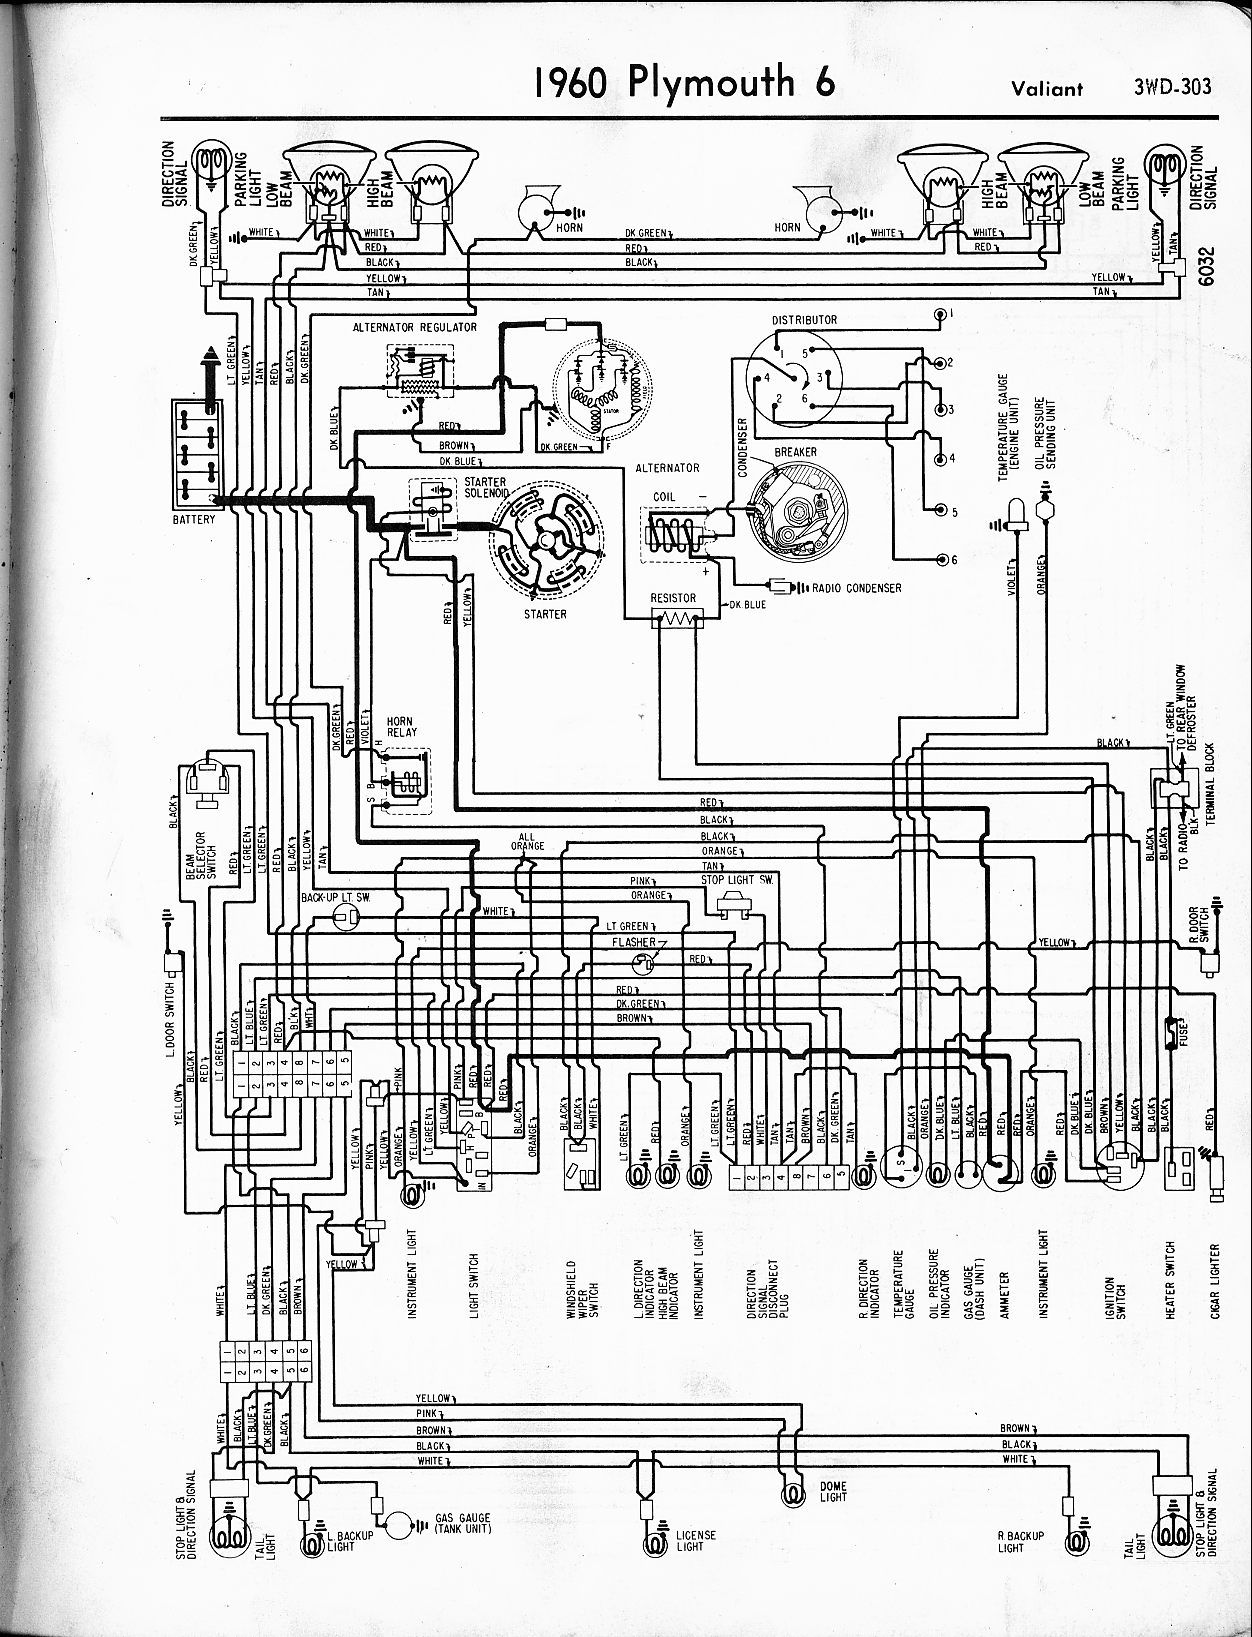 1974 mercedes benz wiring diagrams 1956 1965 plymouth    wiring    the old car manual project  1956 1965 plymouth    wiring    the old car manual project